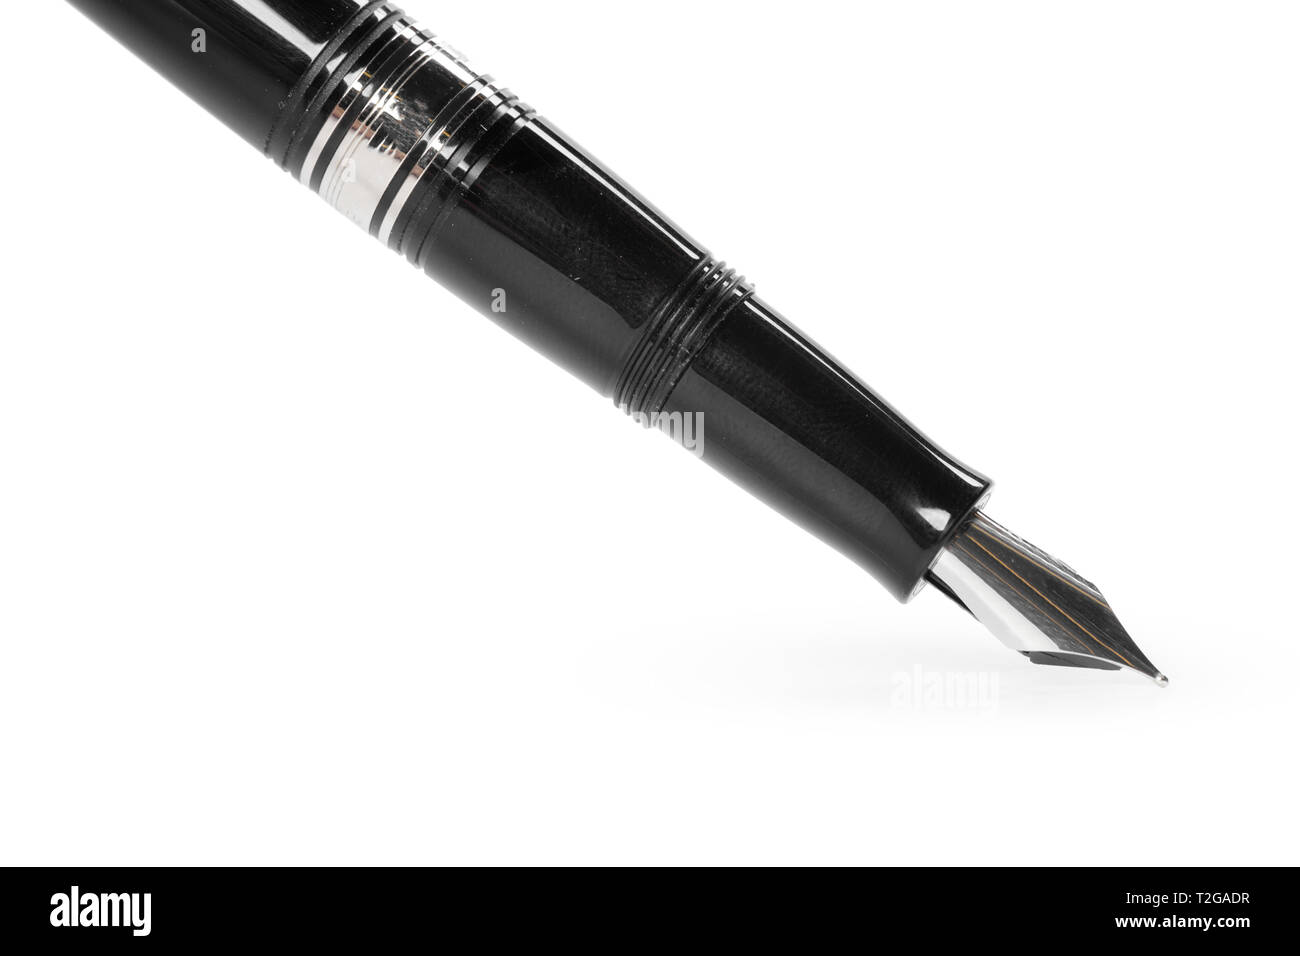 fountain pen isolated on white background - Stock Image